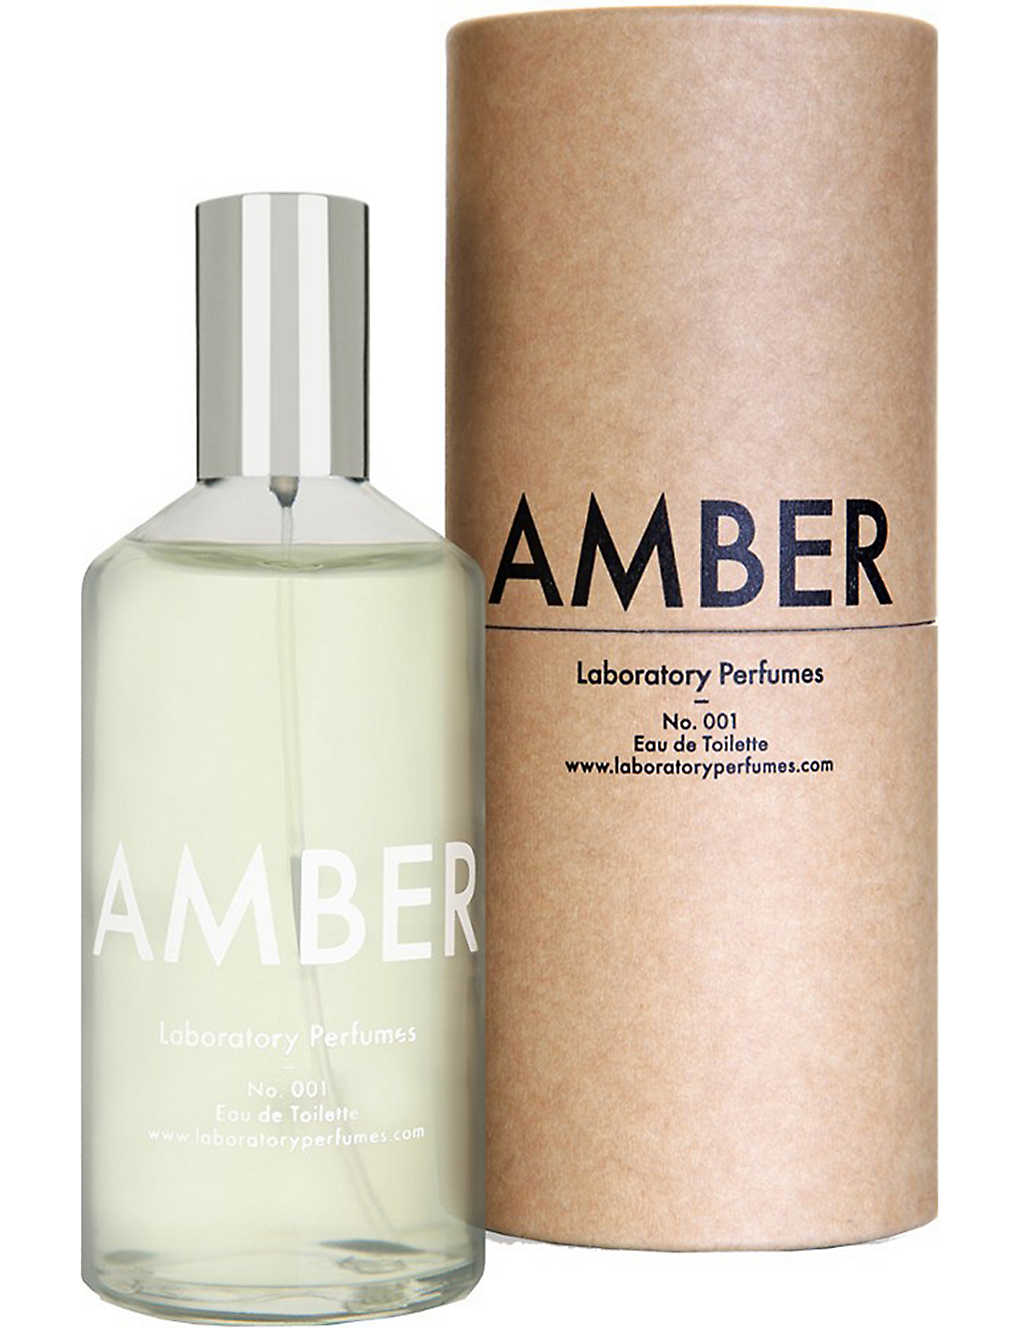 THE CONRAN SHOP: Laboratory Perfumes Amber eau de toilette 100ml